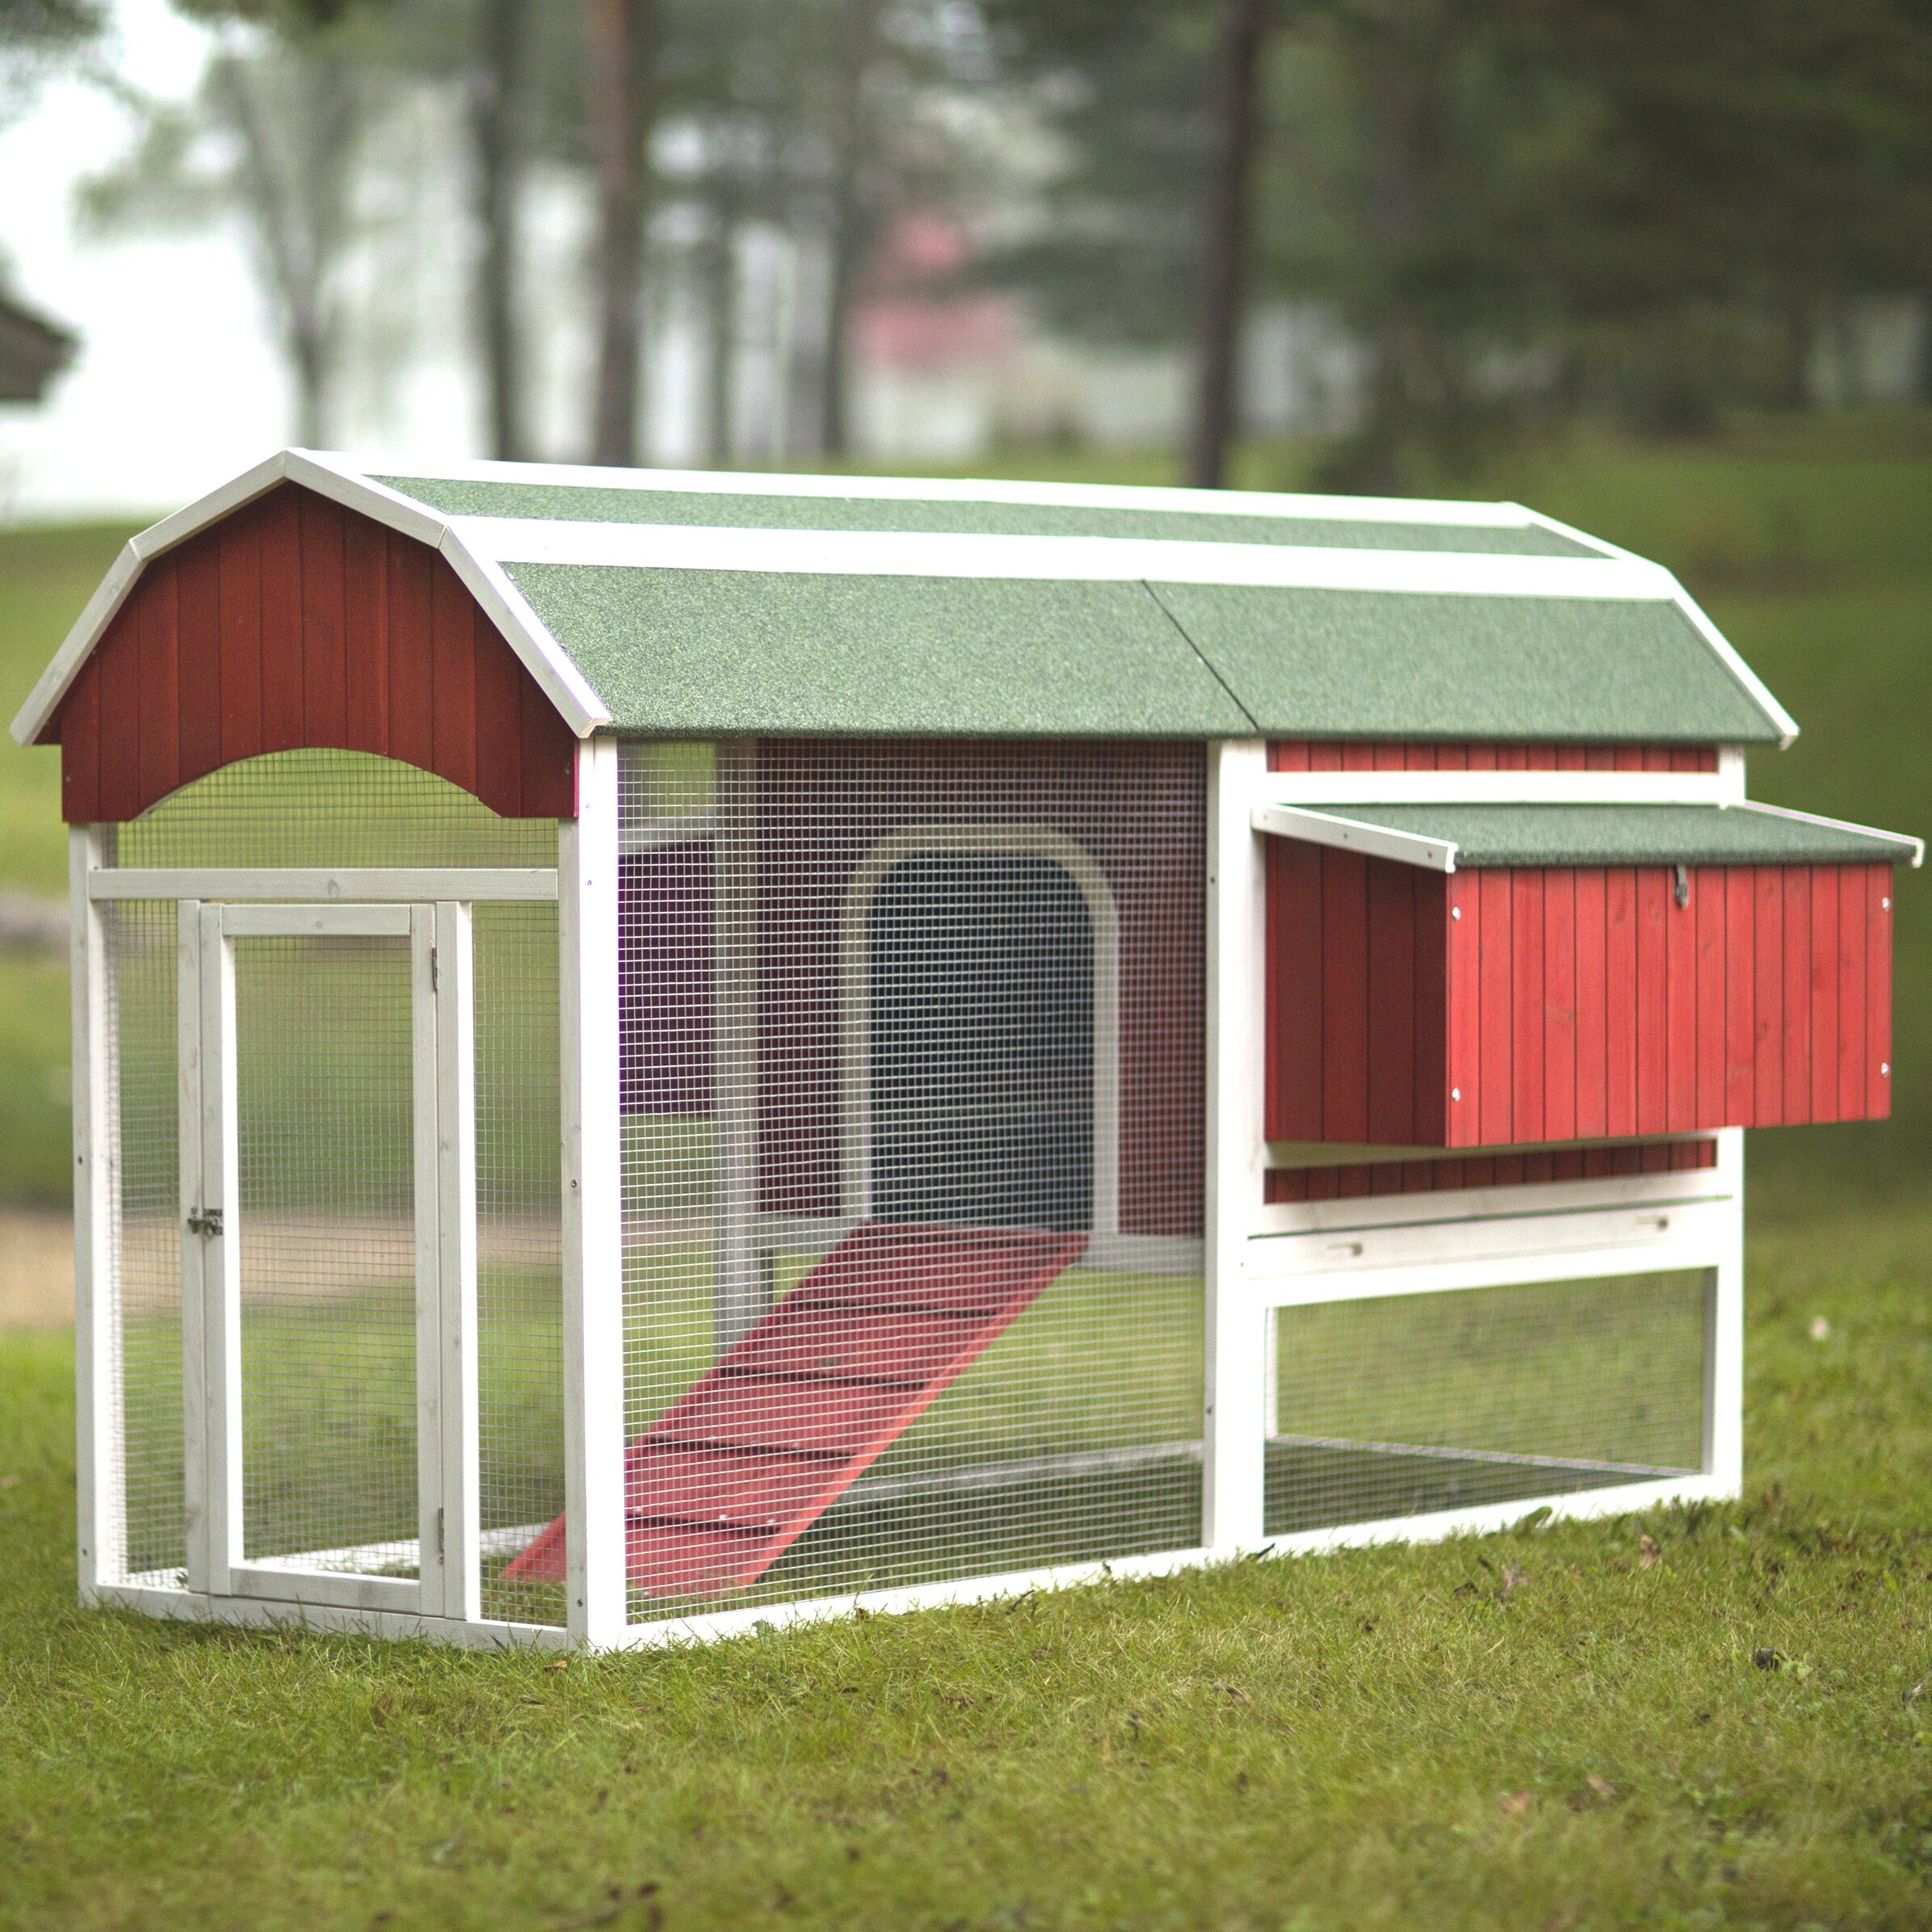 Prevue Hendryx Red Barn Large Chicken Coop & Reviews